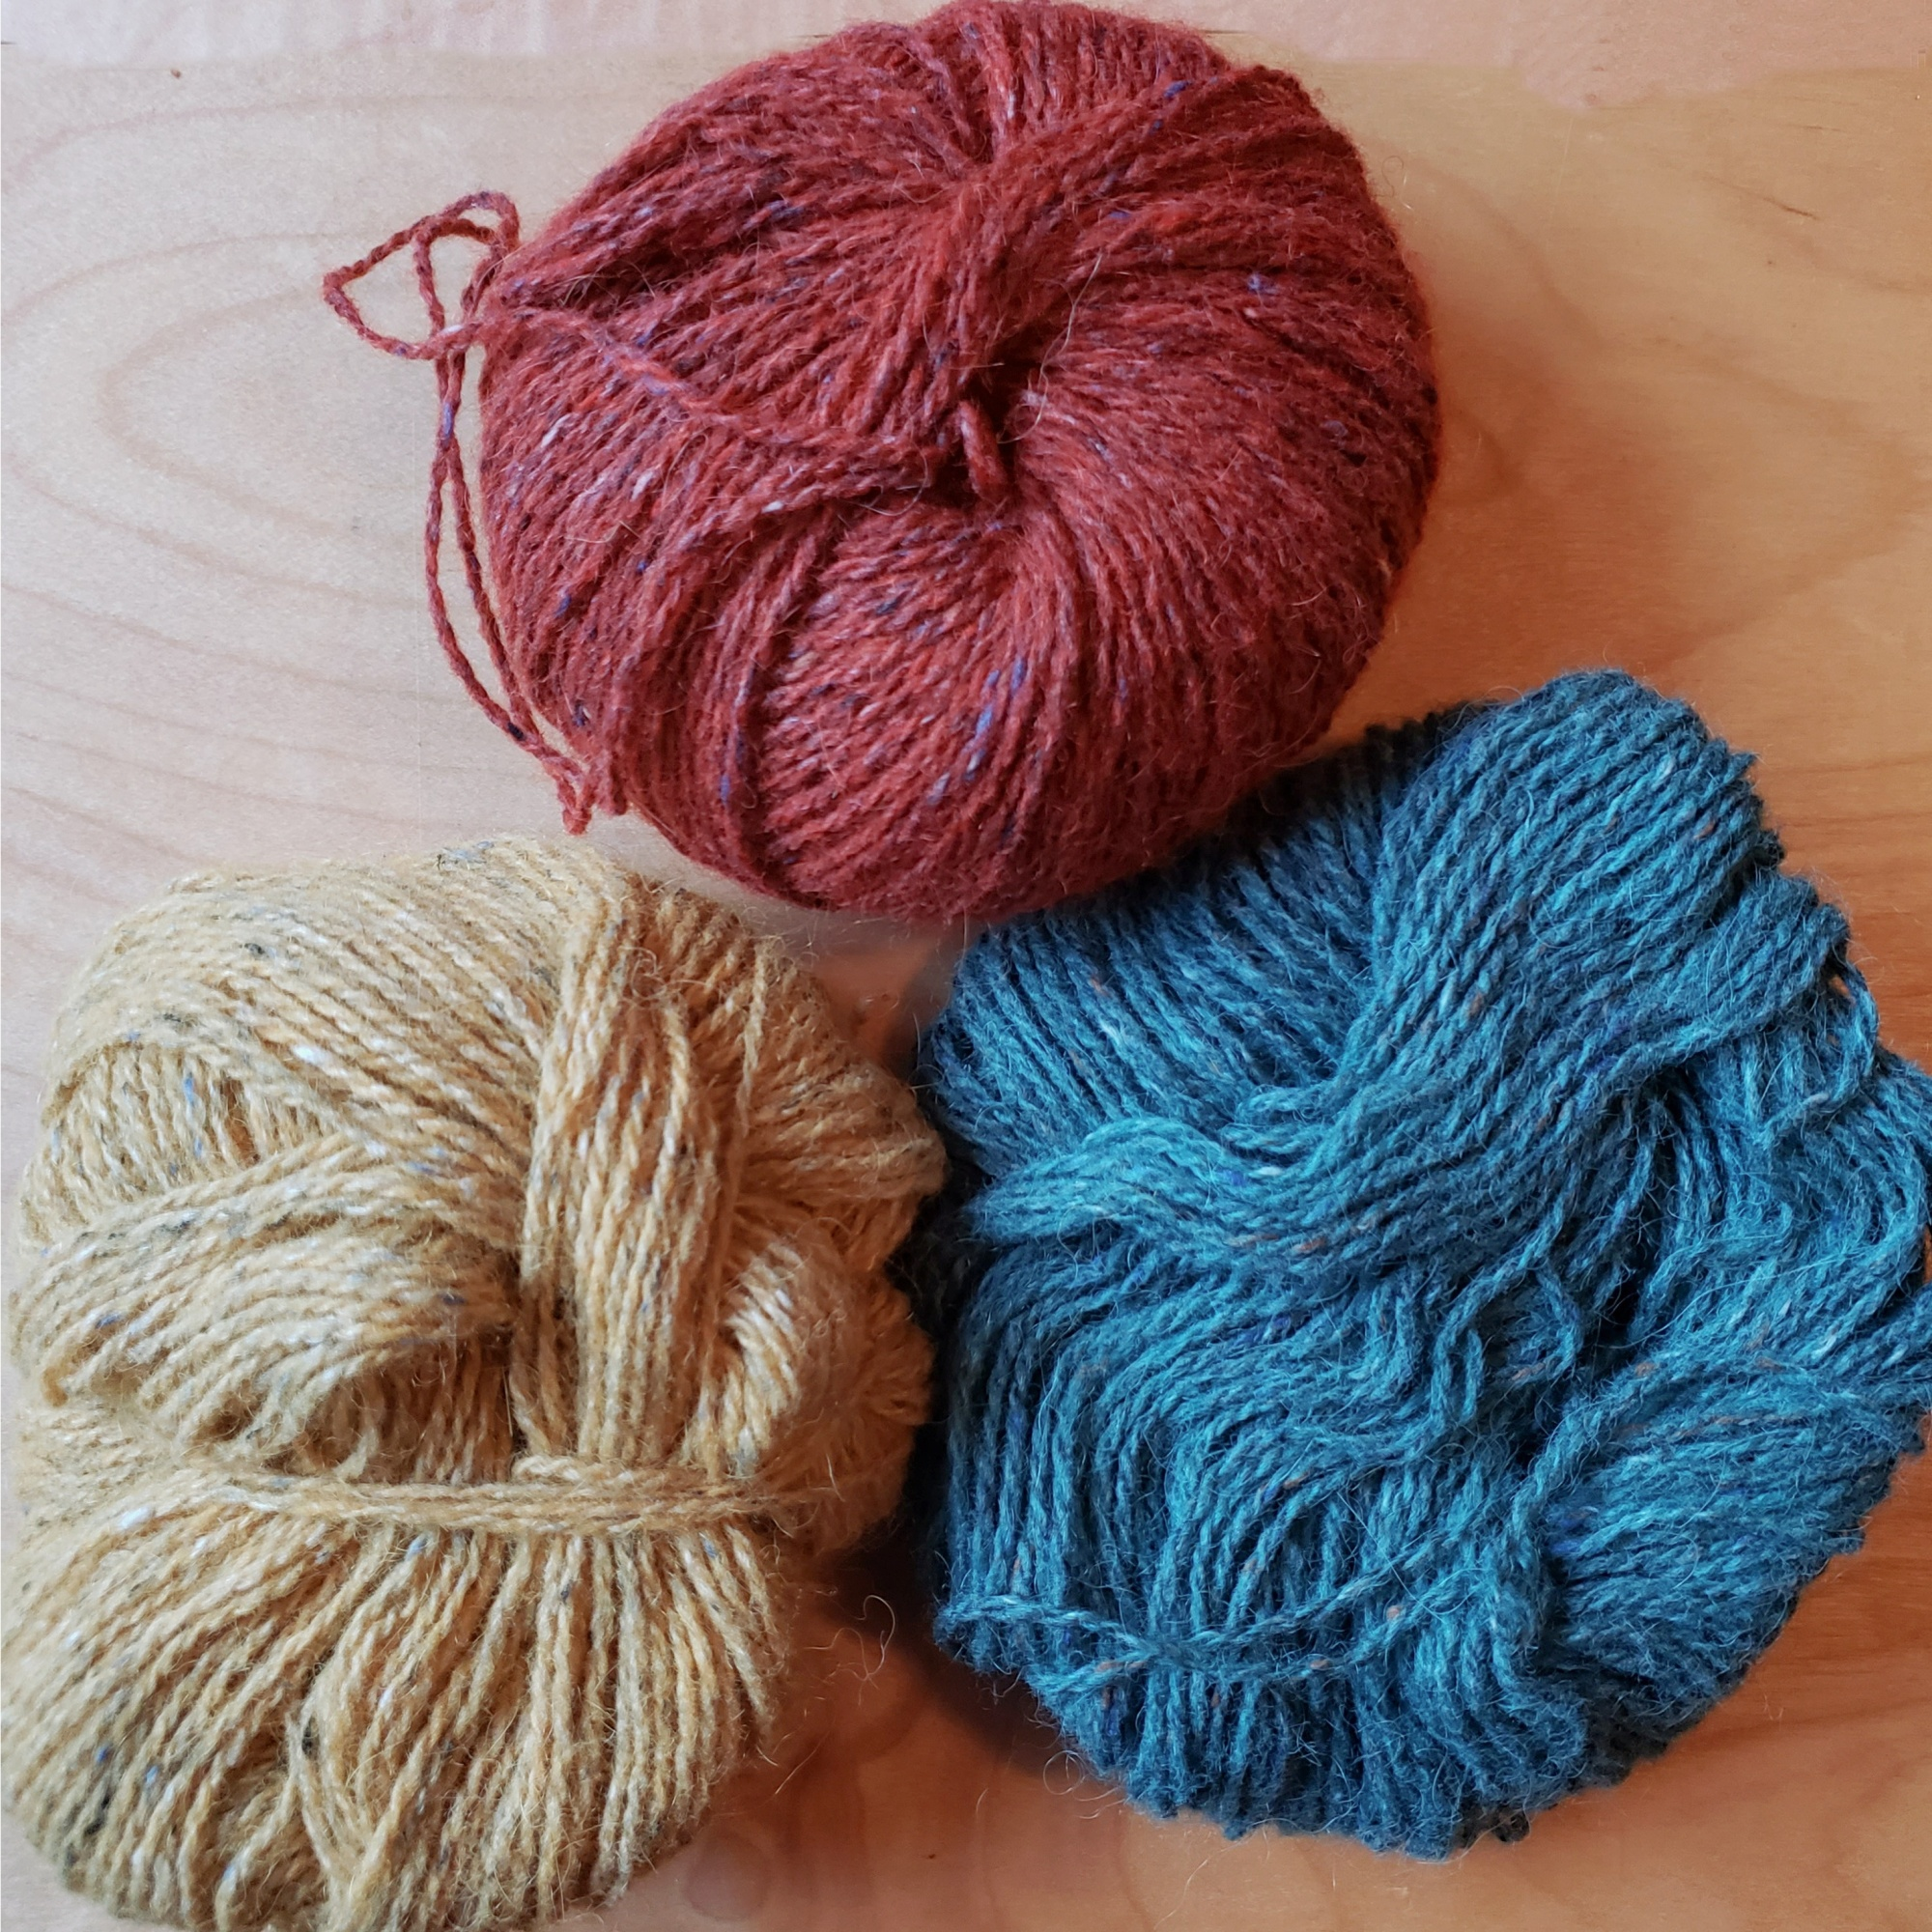 A trio of yarn balls in rust, teal, and gold